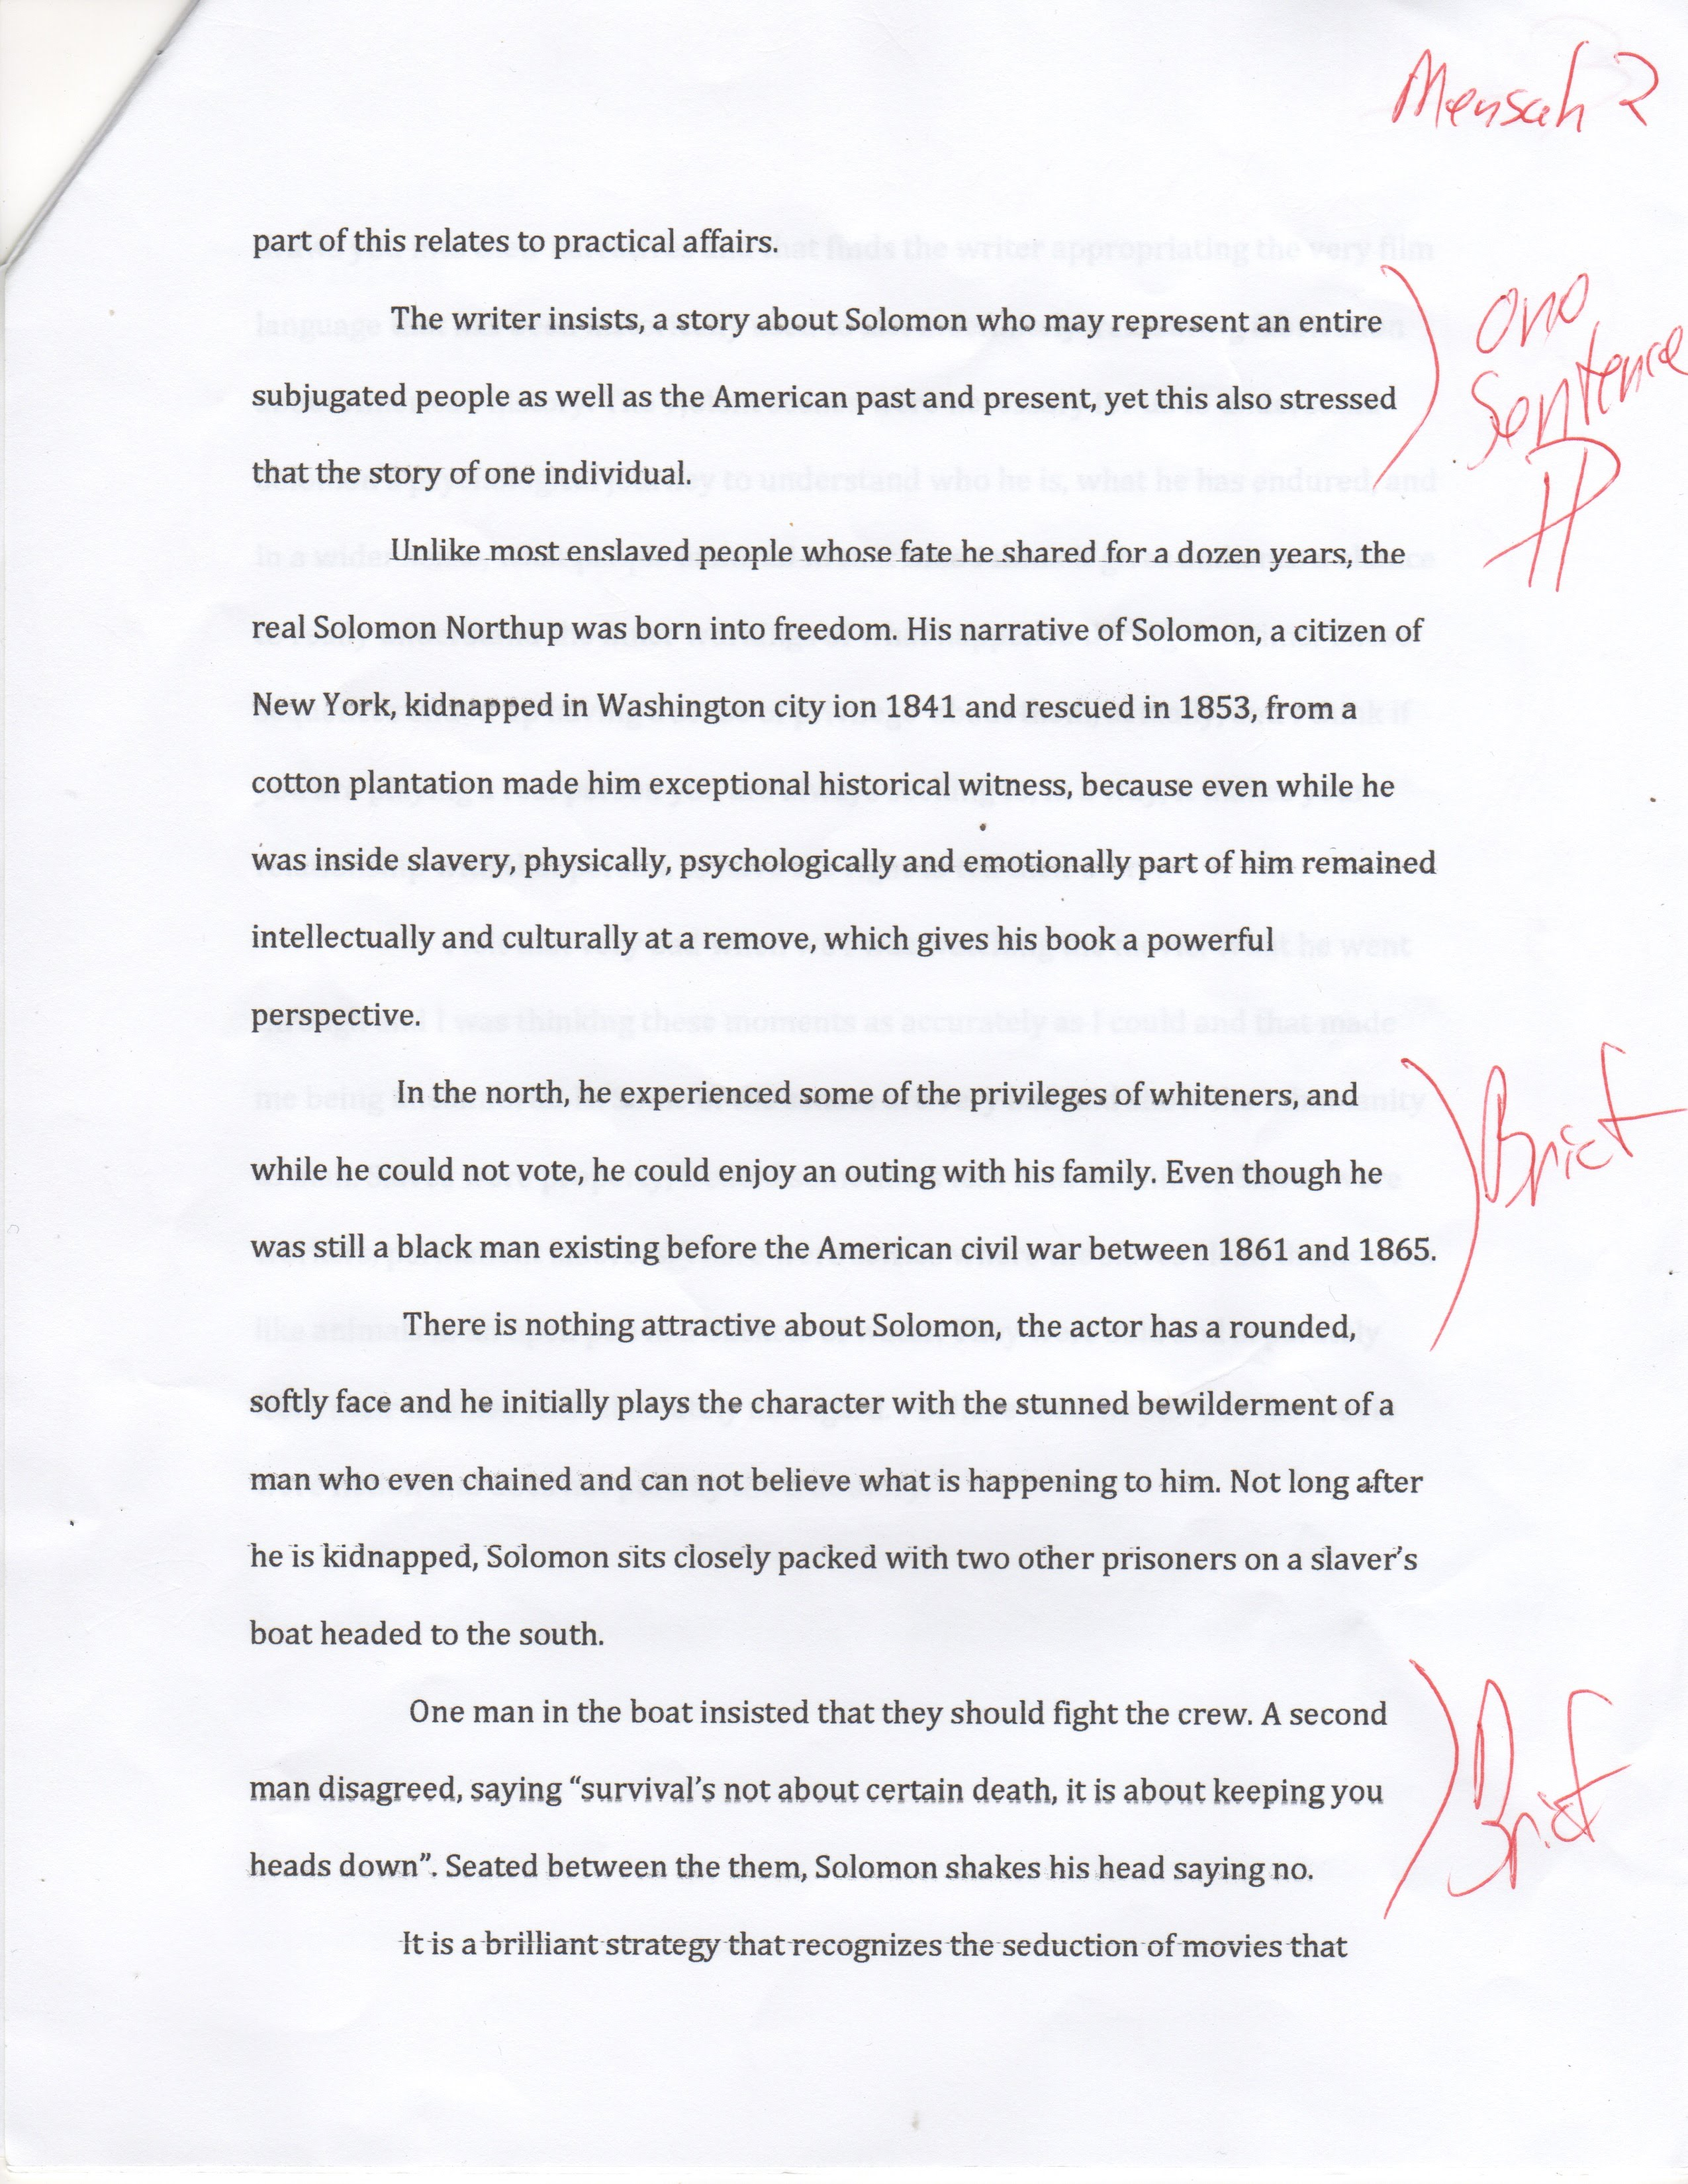 division classification essay topics essay topics on media essay  essay topics on media essay topics on media our work media essay essay topics on media